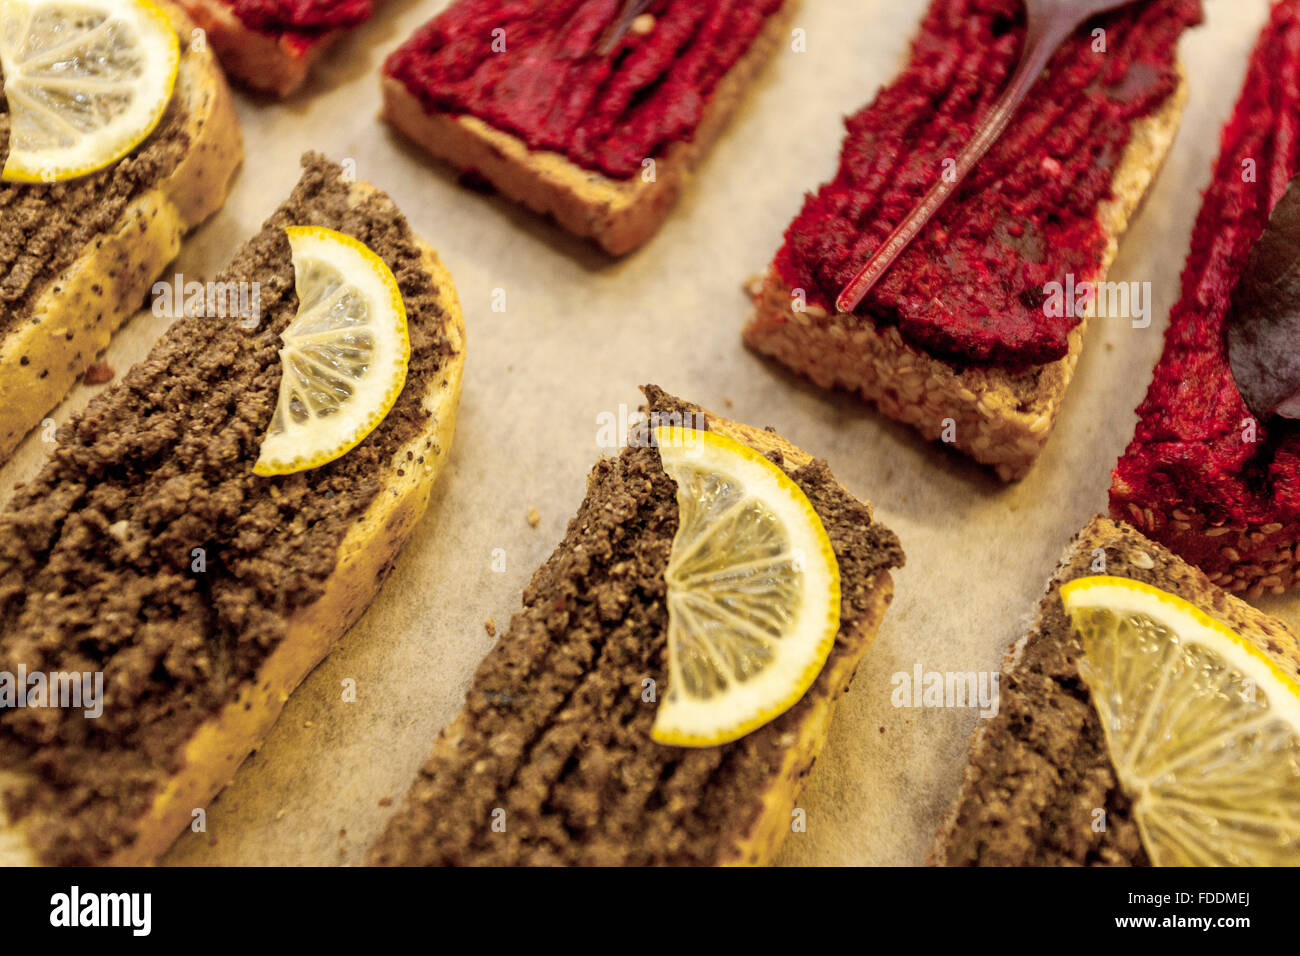 Spreads sardines and beetroot on bread - Stock Image